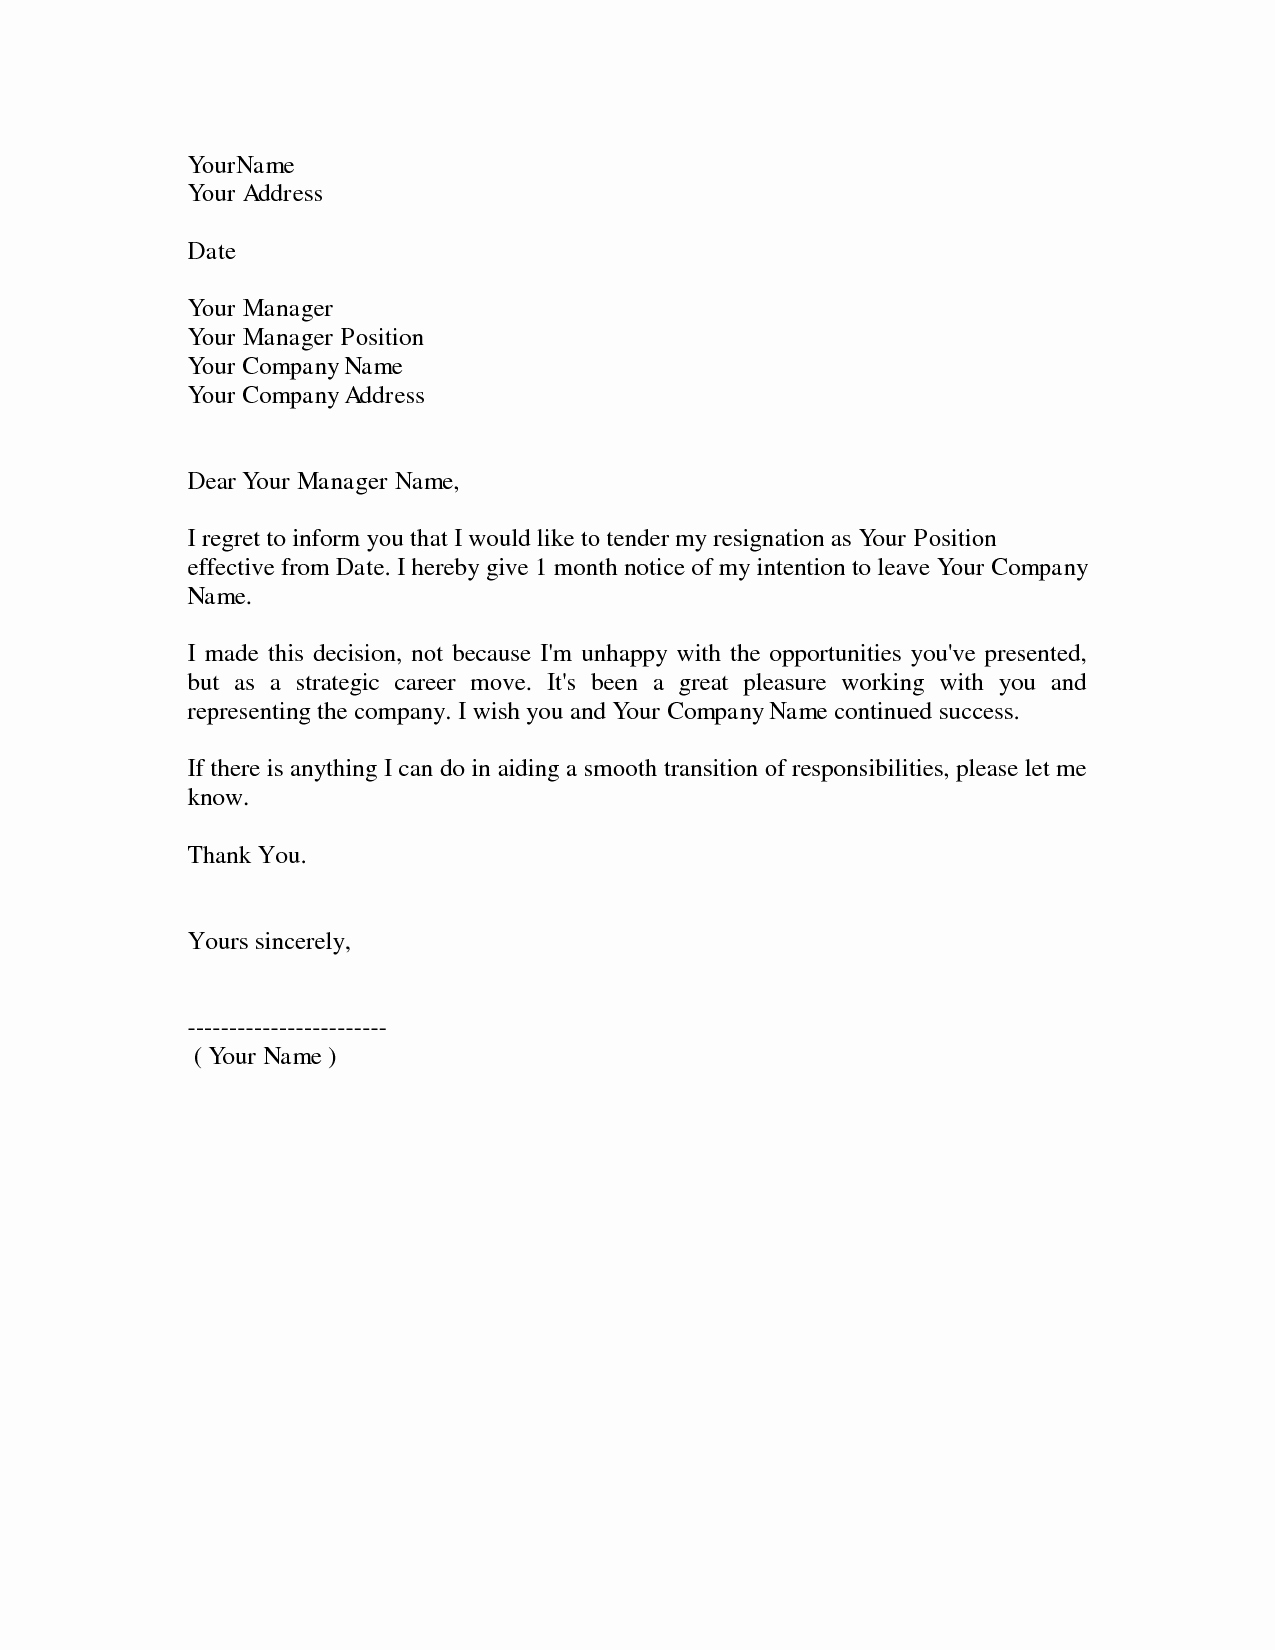 Resignation Letter Sample Free Inspirational Download Resignation Letters Pdf & Doc